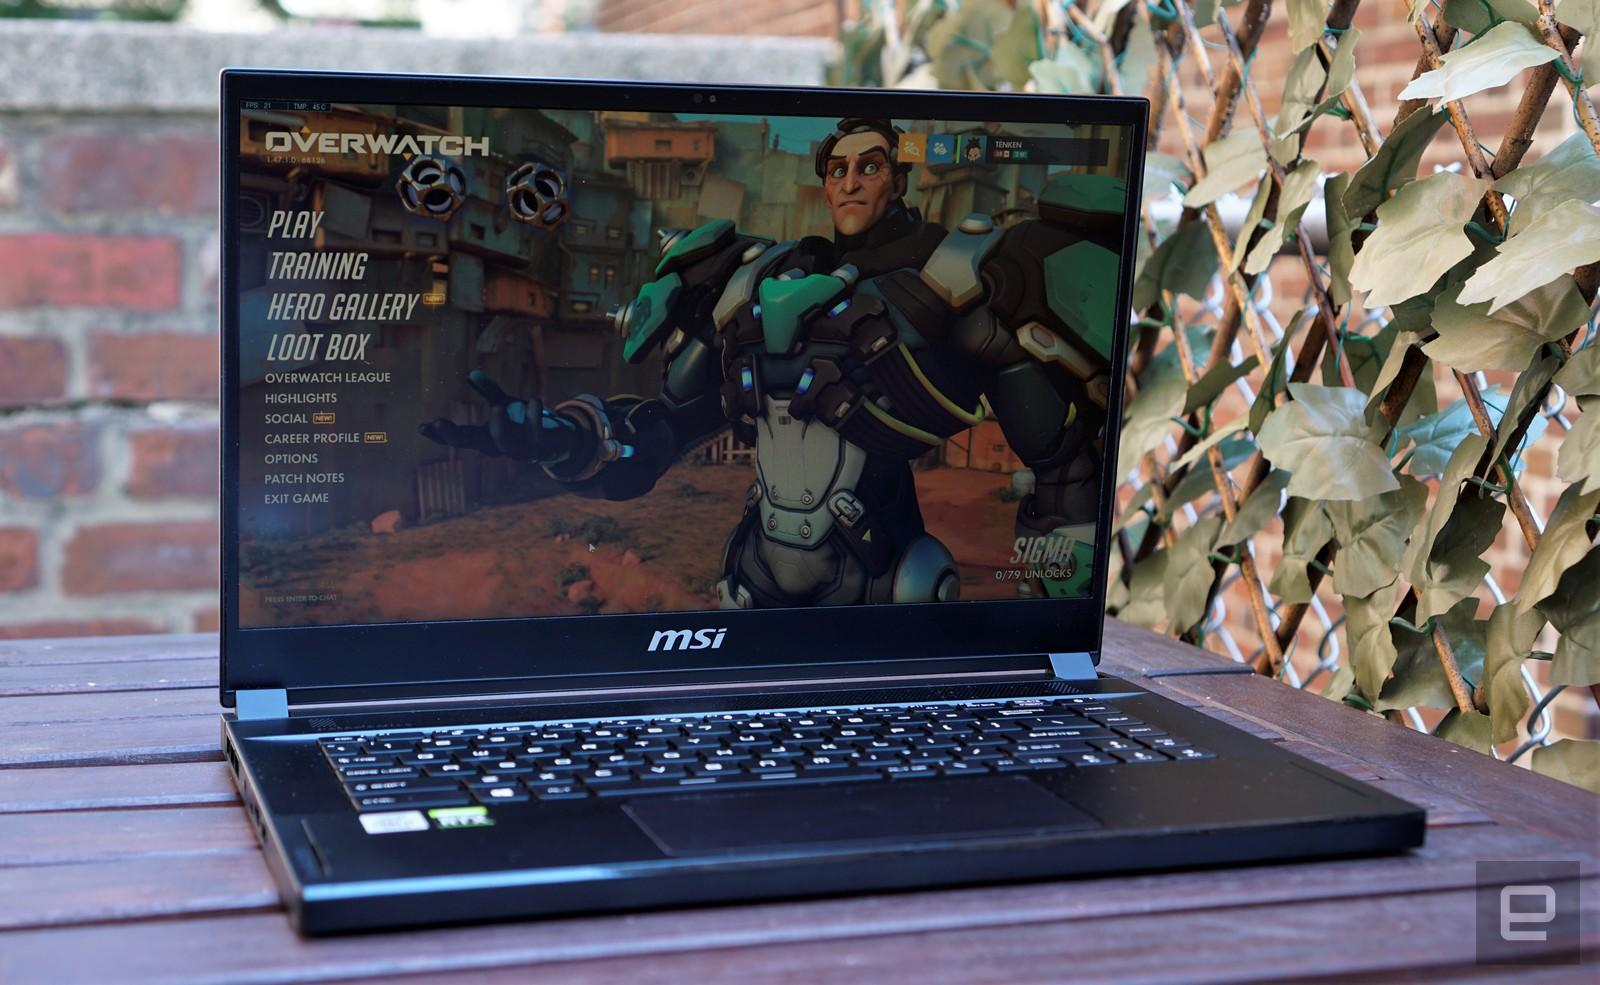 Msi Gs66 Stealth Review A 300hz Gaming Laptop In A Crowded Field